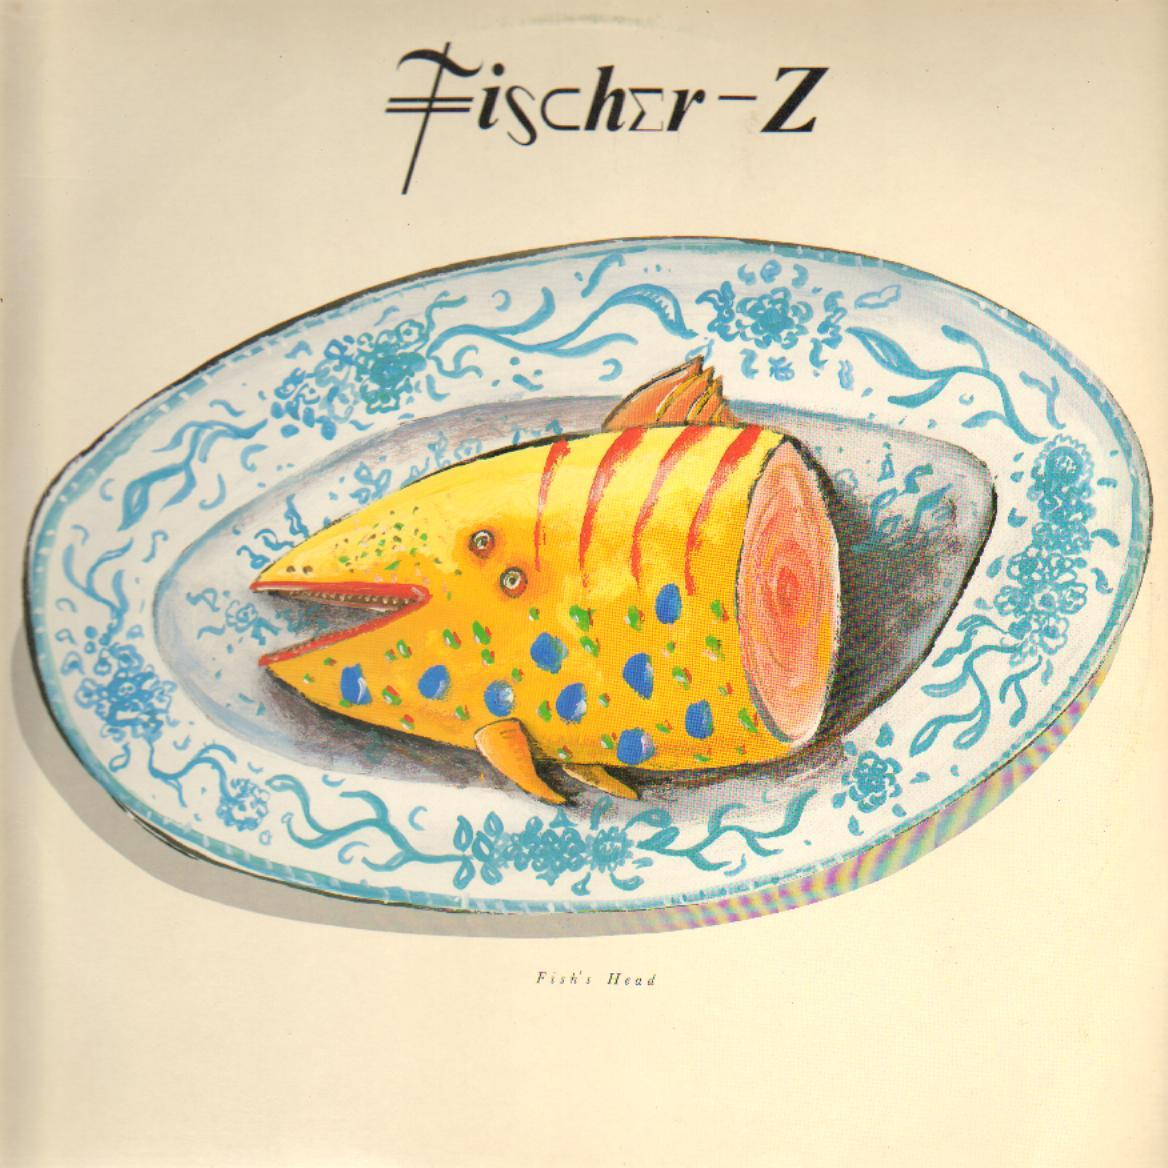 fischer-z-fishs_head.jpg